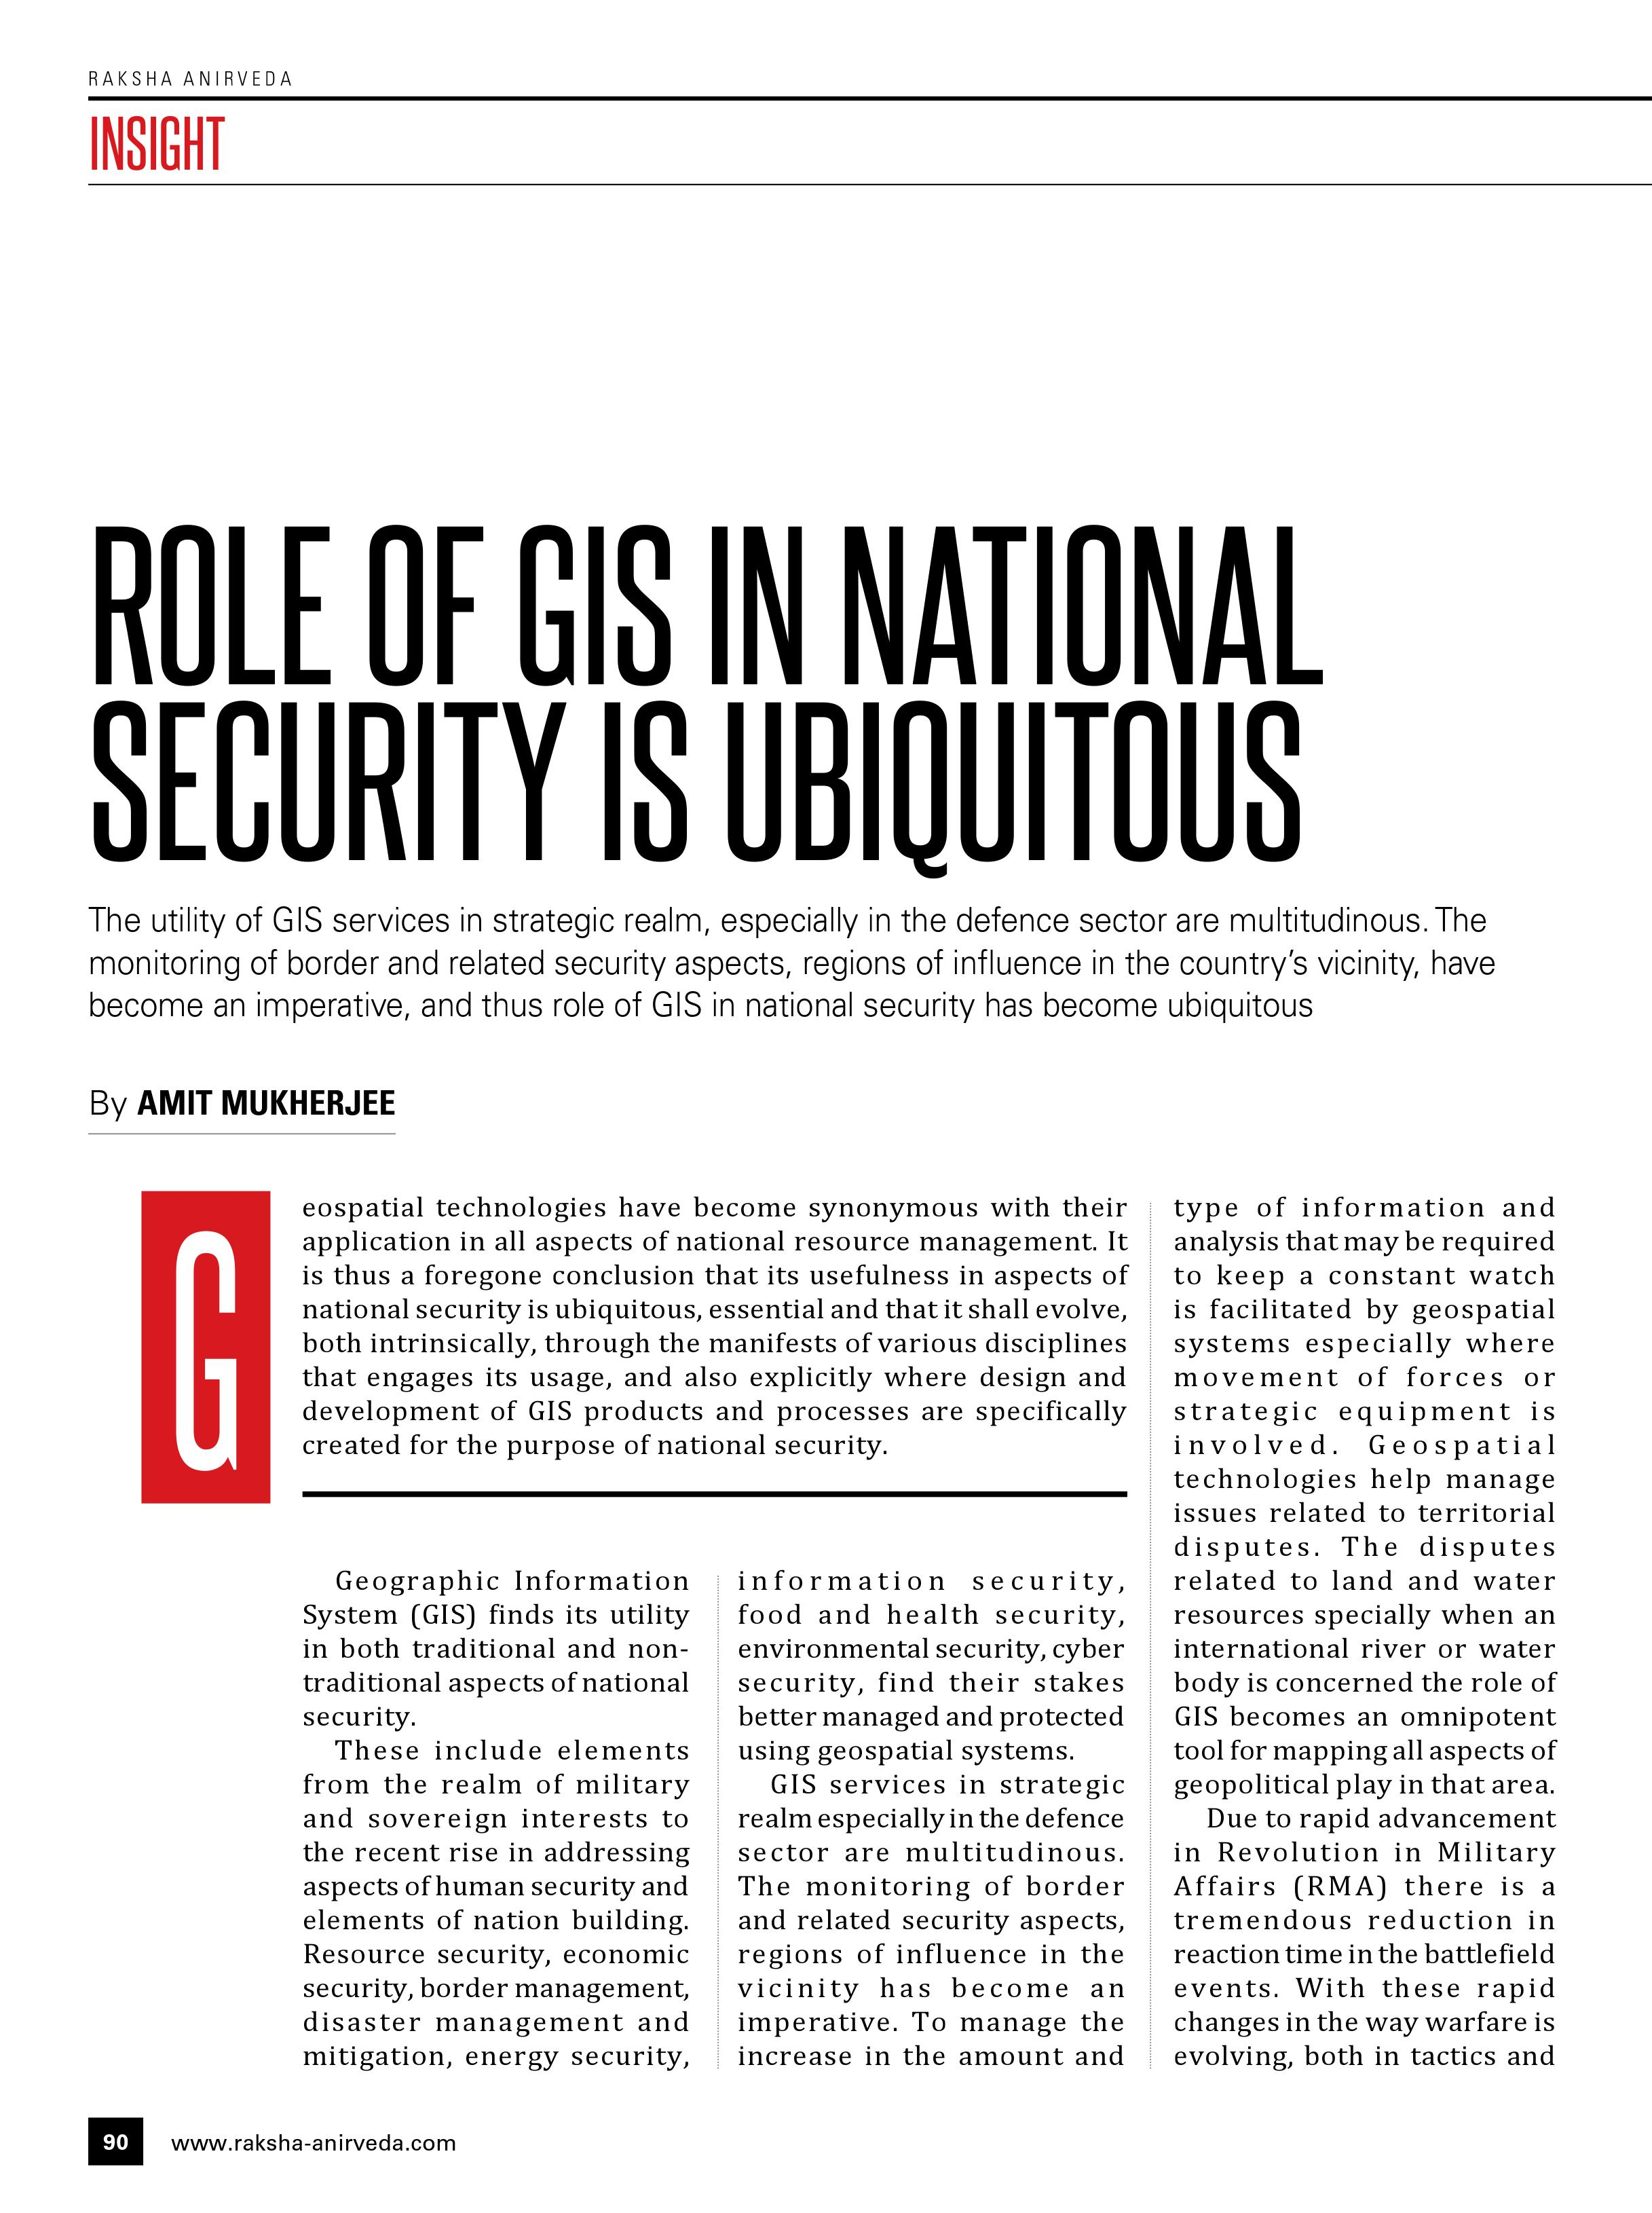 ROLE OF GIS IN NATIONAL SECURITY IS UBIQUITOUS